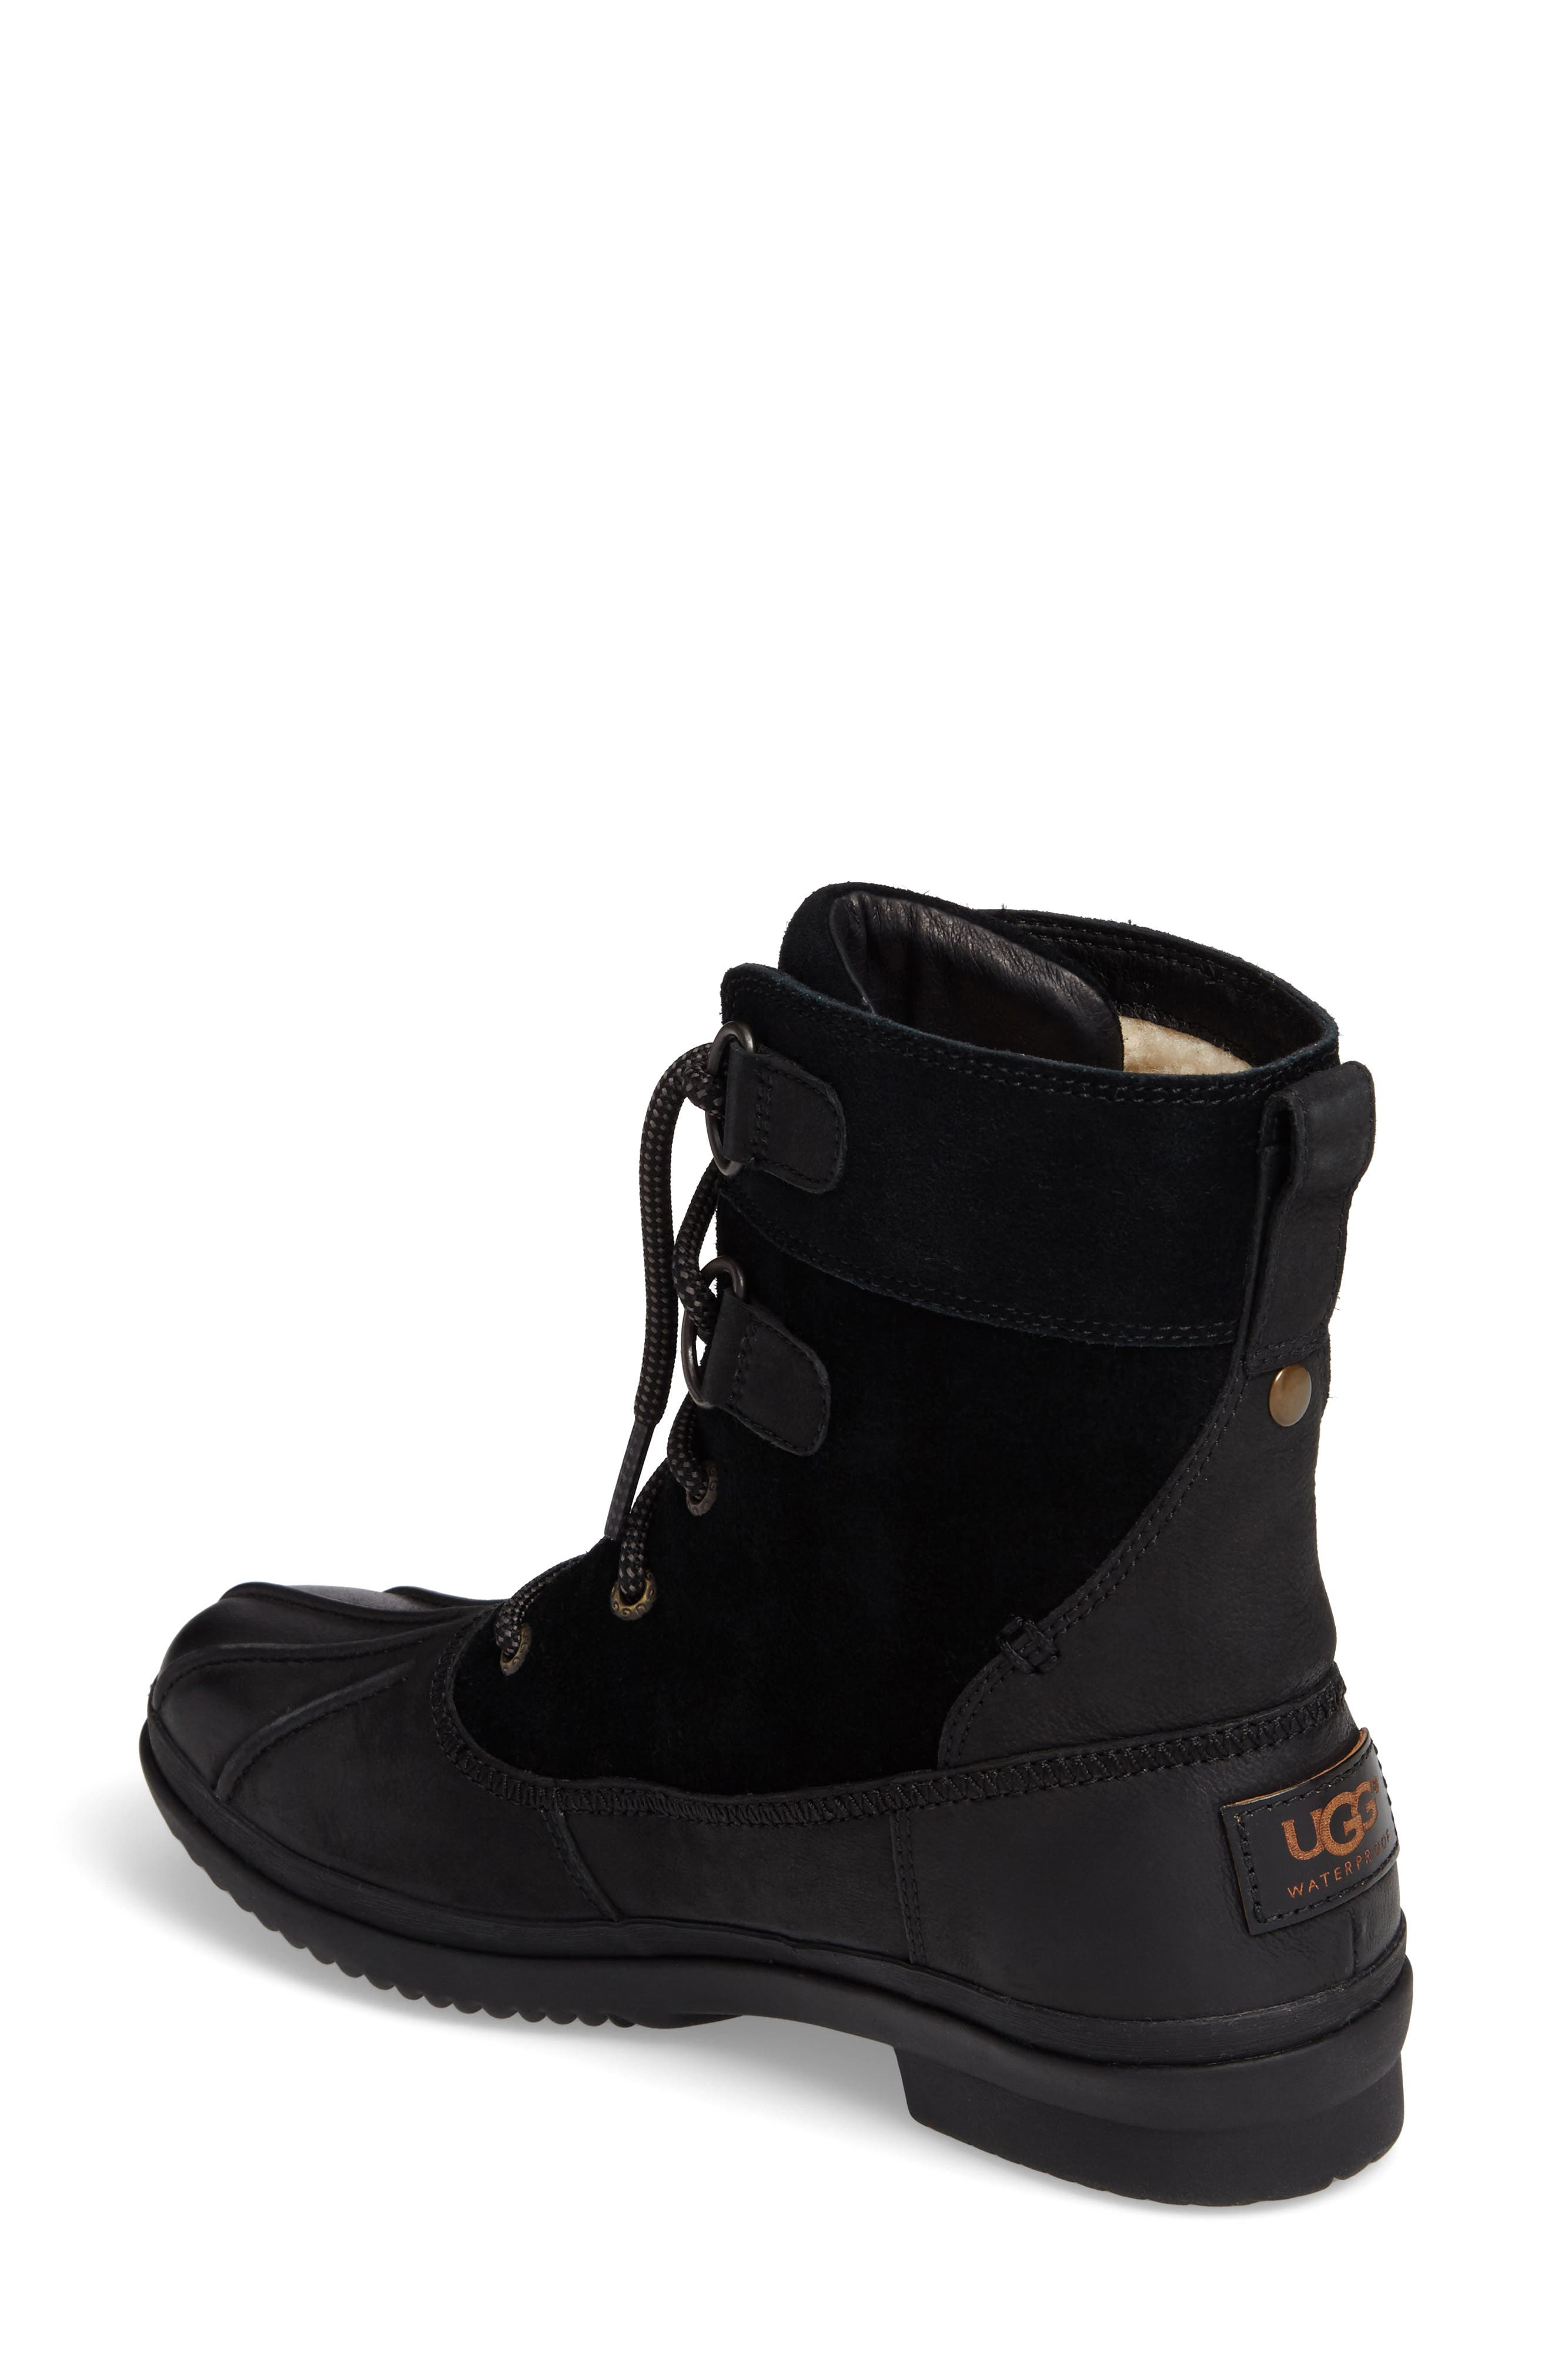 Azaria Waterproof Boot,                             Alternate thumbnail 2, color,                             Black Leather